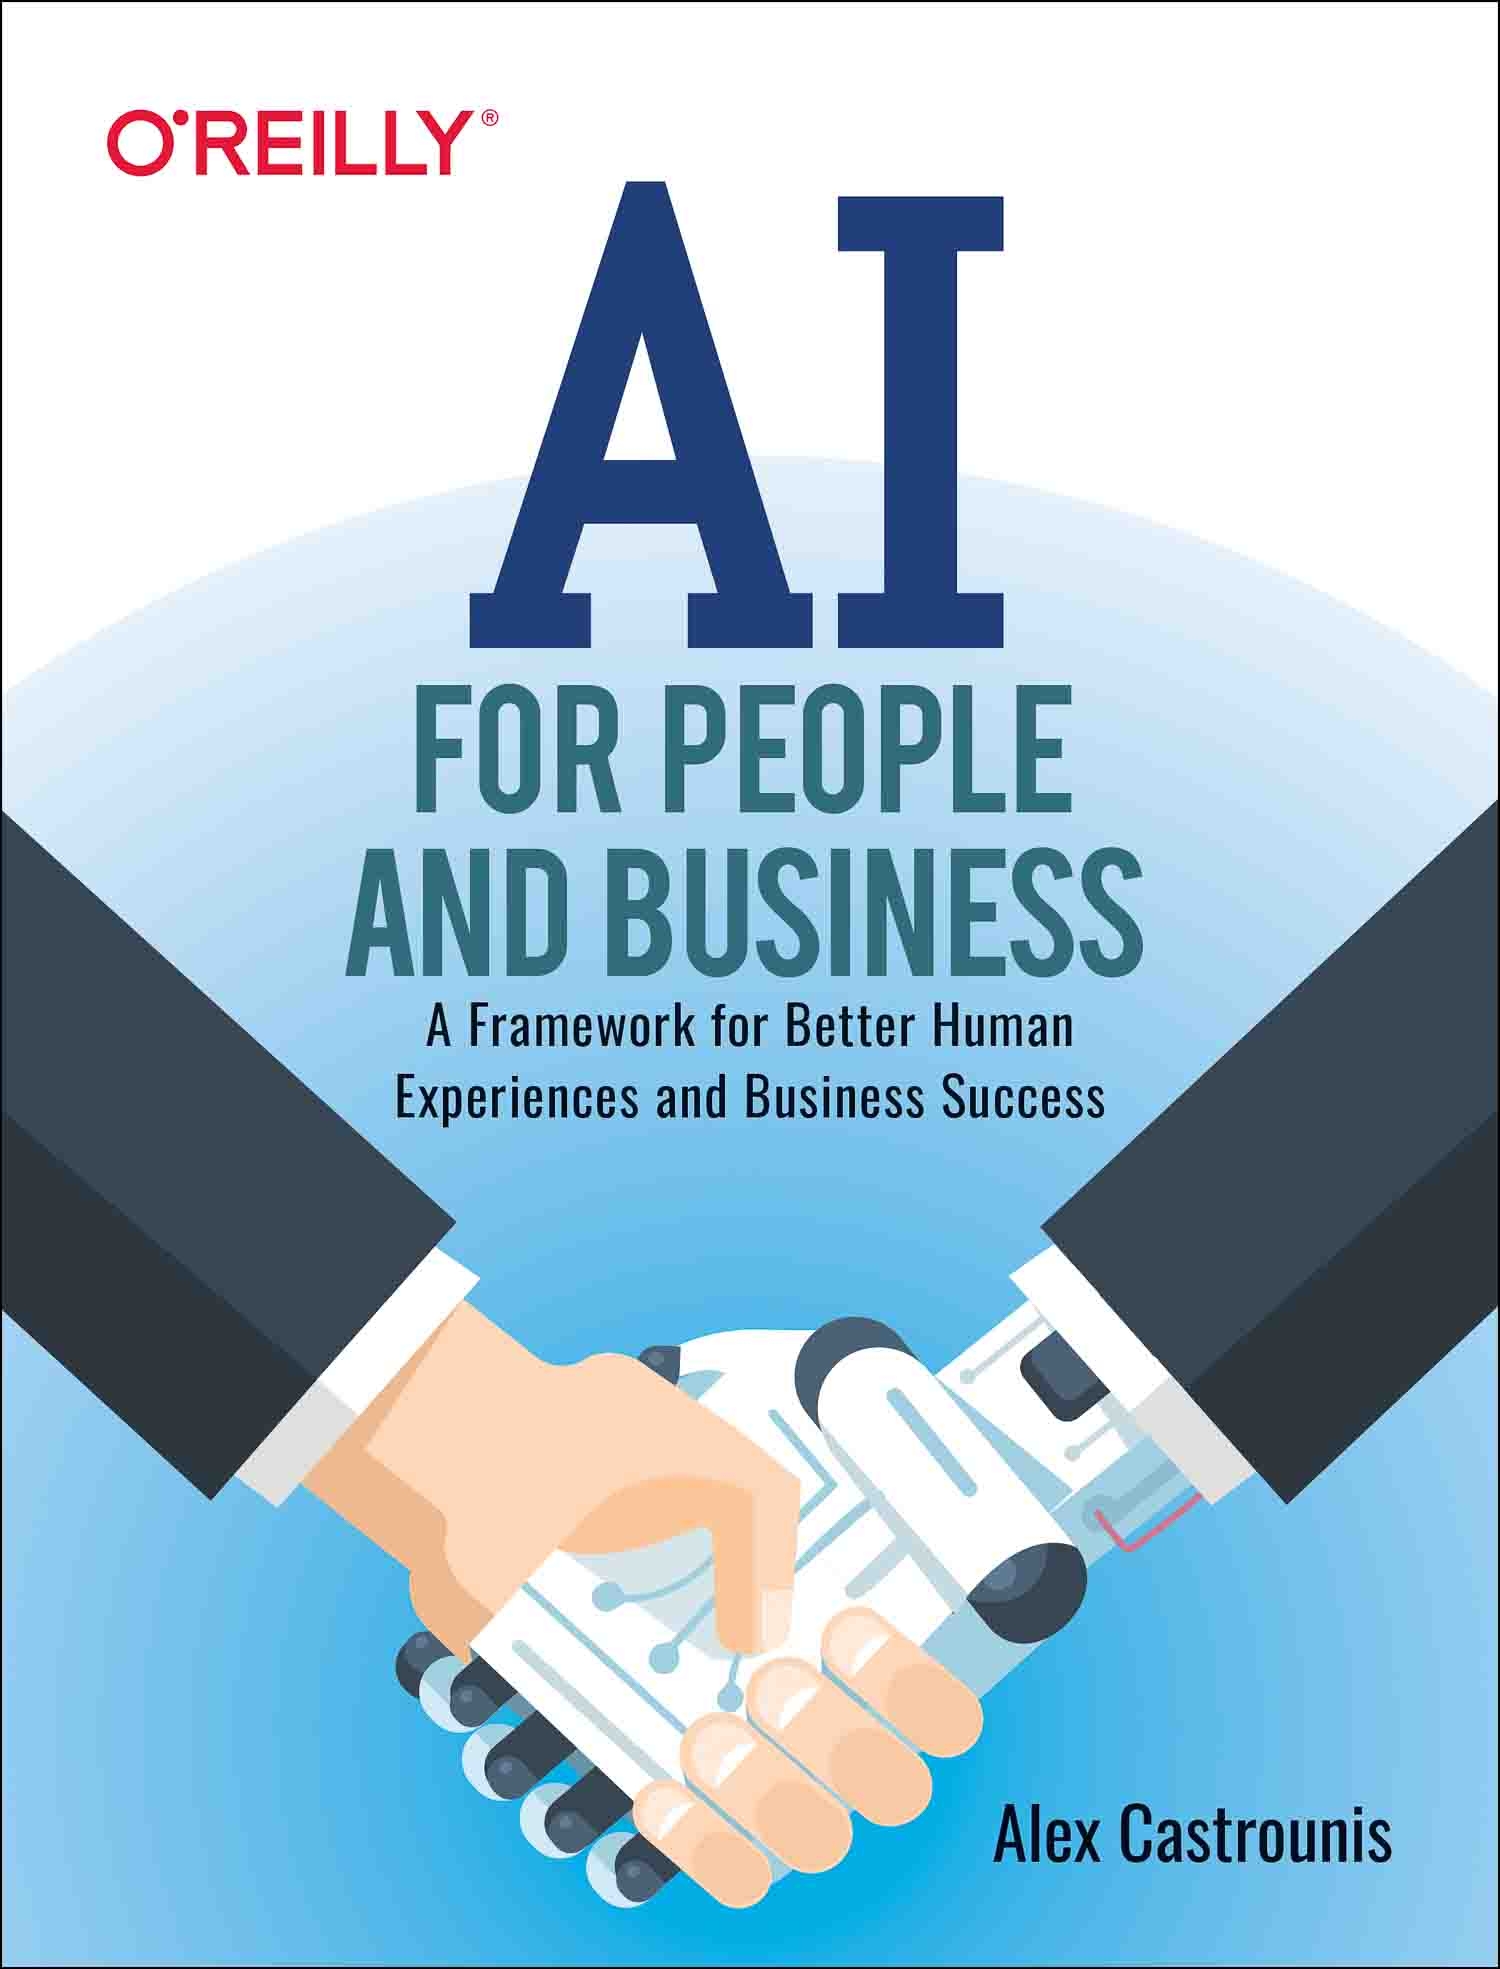 ai-for-people-business-book-cover-author-alex-castrounis-oreilly-media.jpg